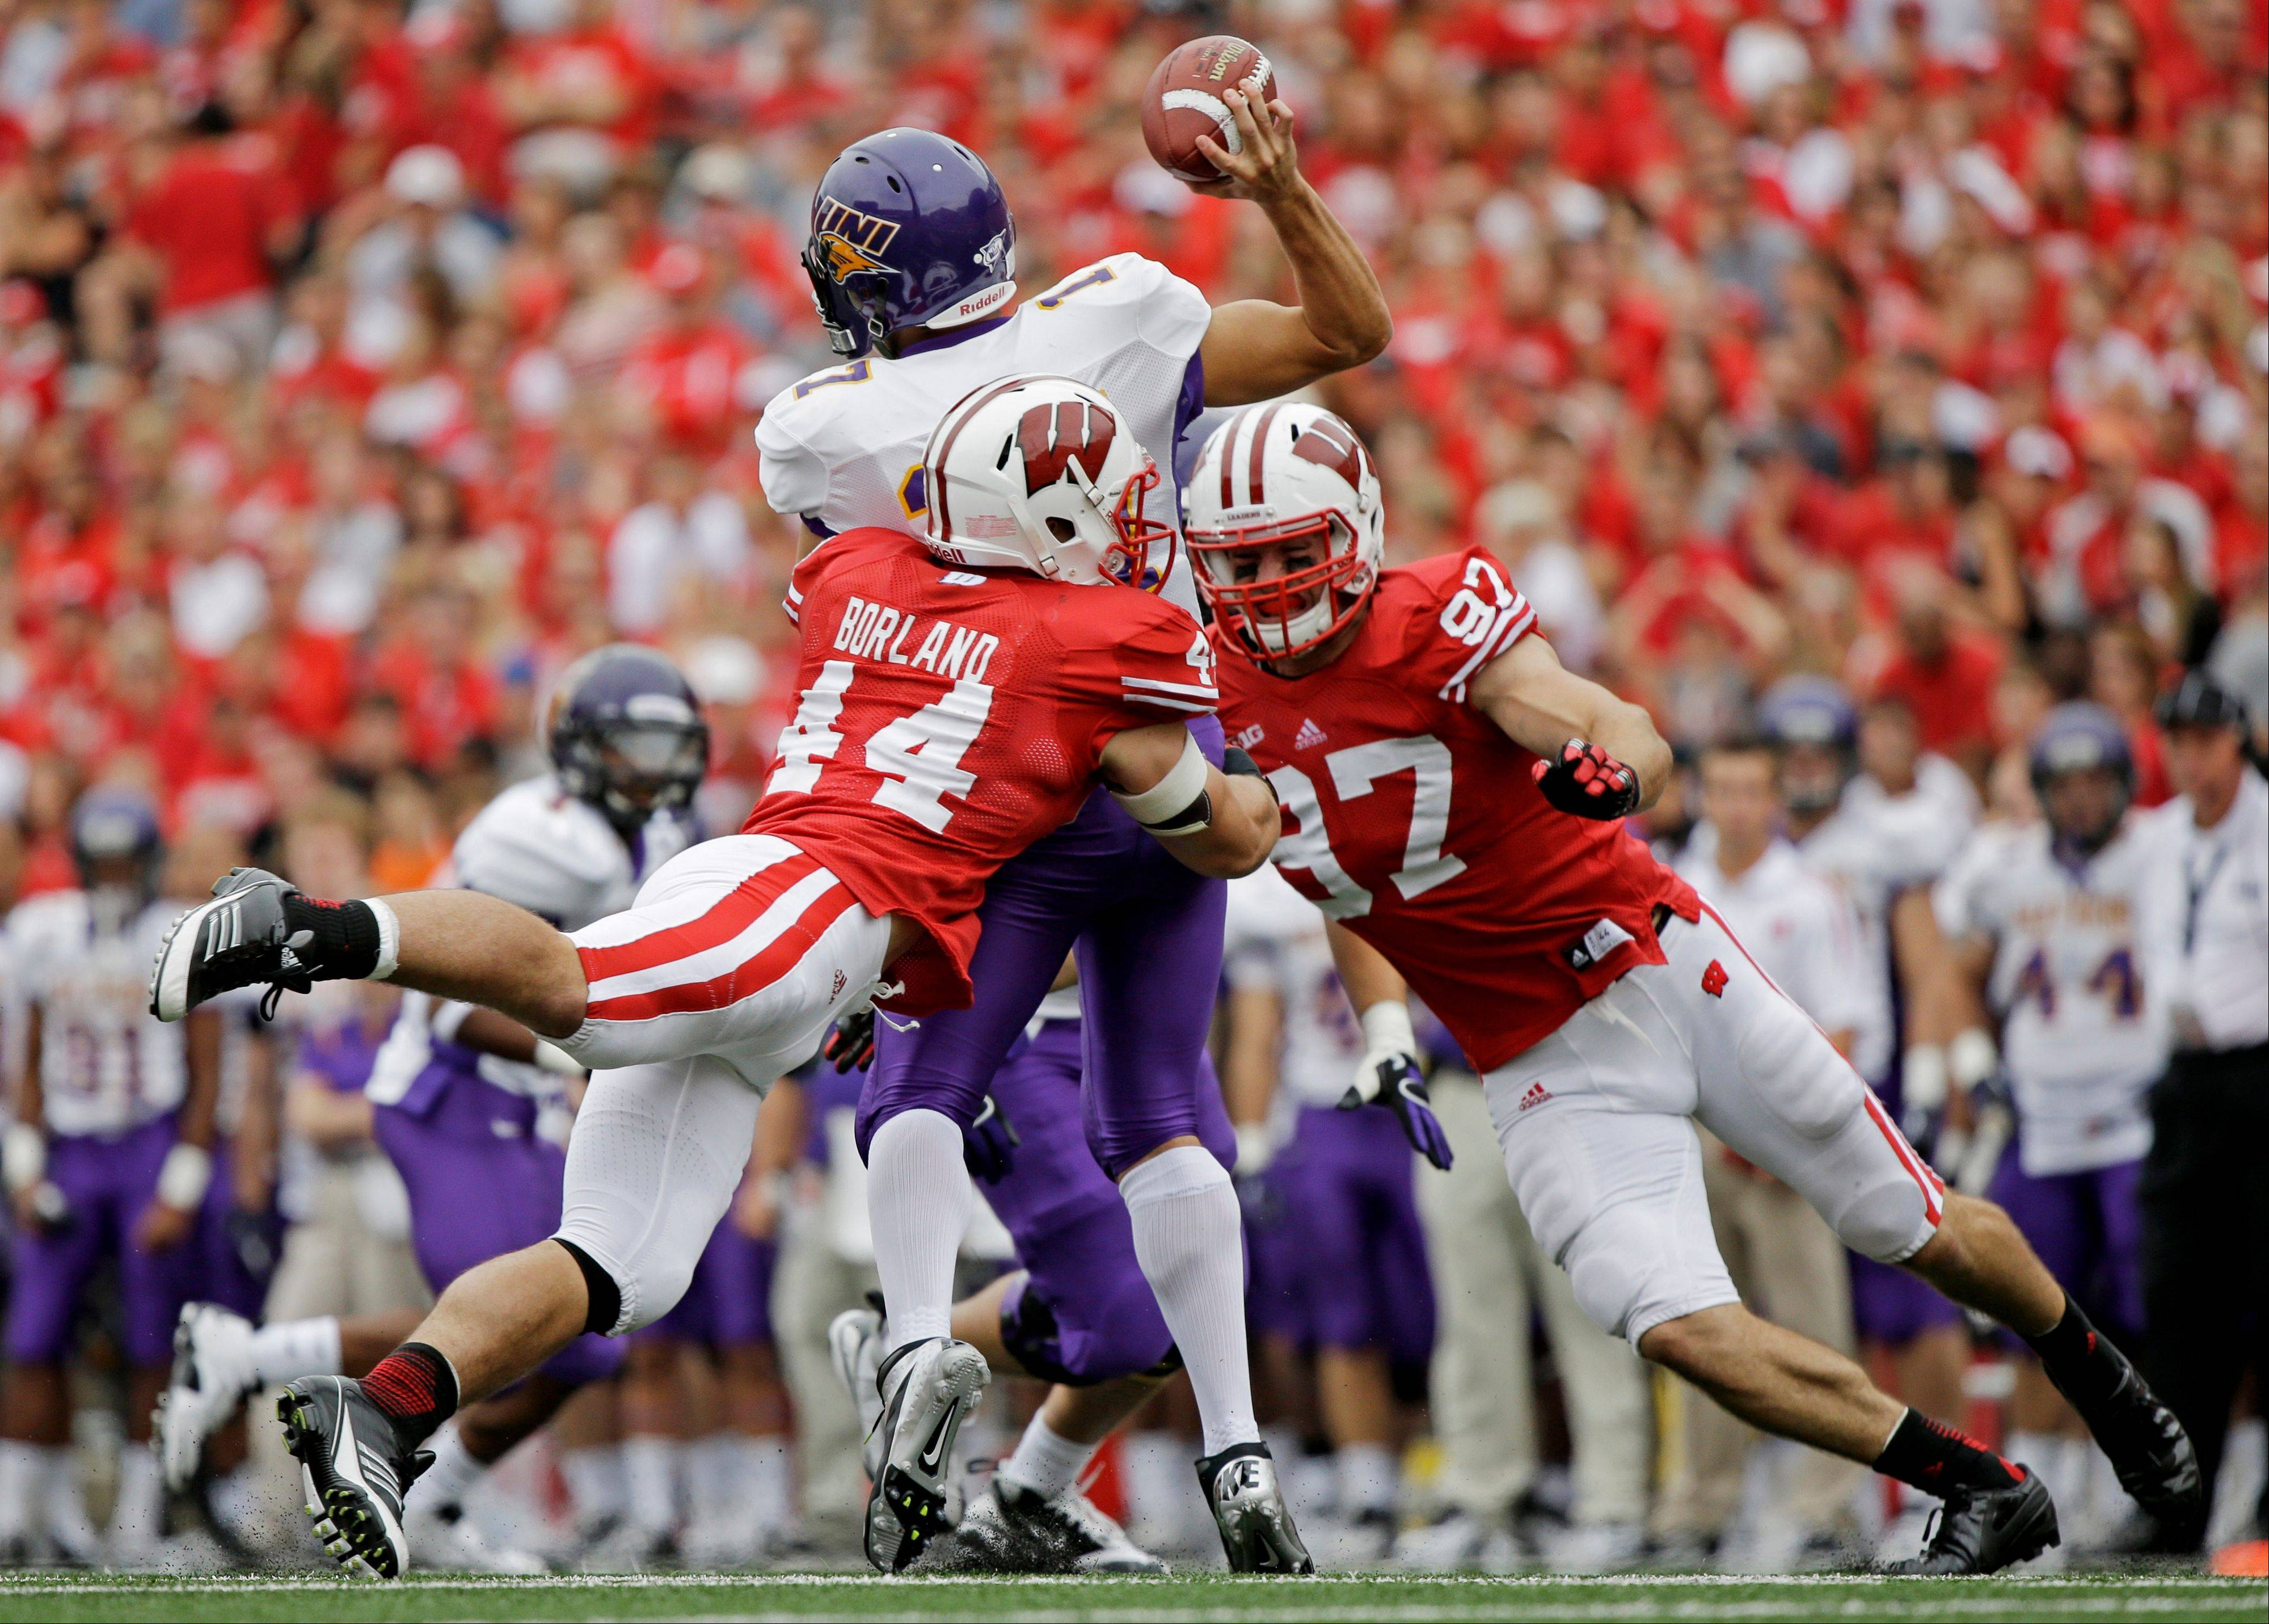 Playmaker Borland paces Wisconsin defense